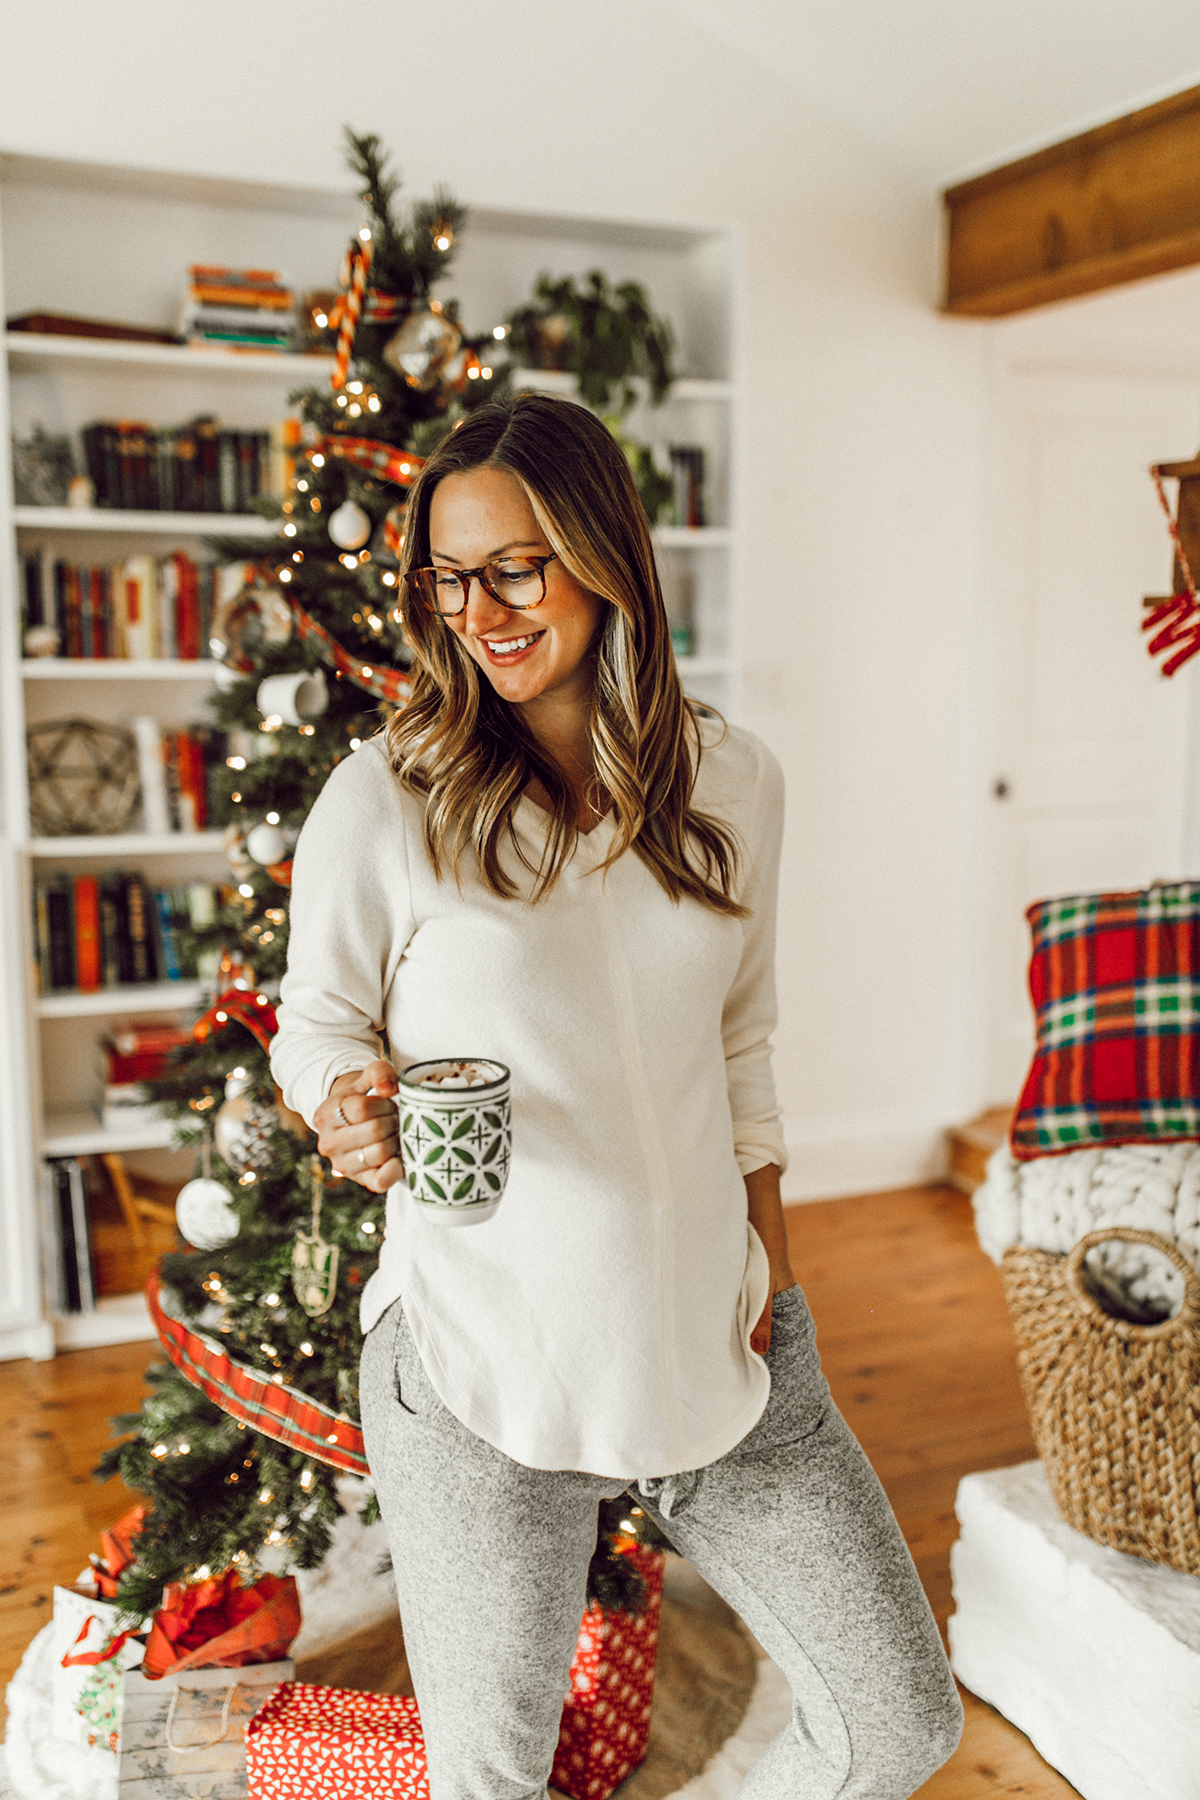 livvyland-blog-olivia-watson-austin-texas-fashion-blogger-cozy-christmas-gift-idea-bobeau-loungewear-7